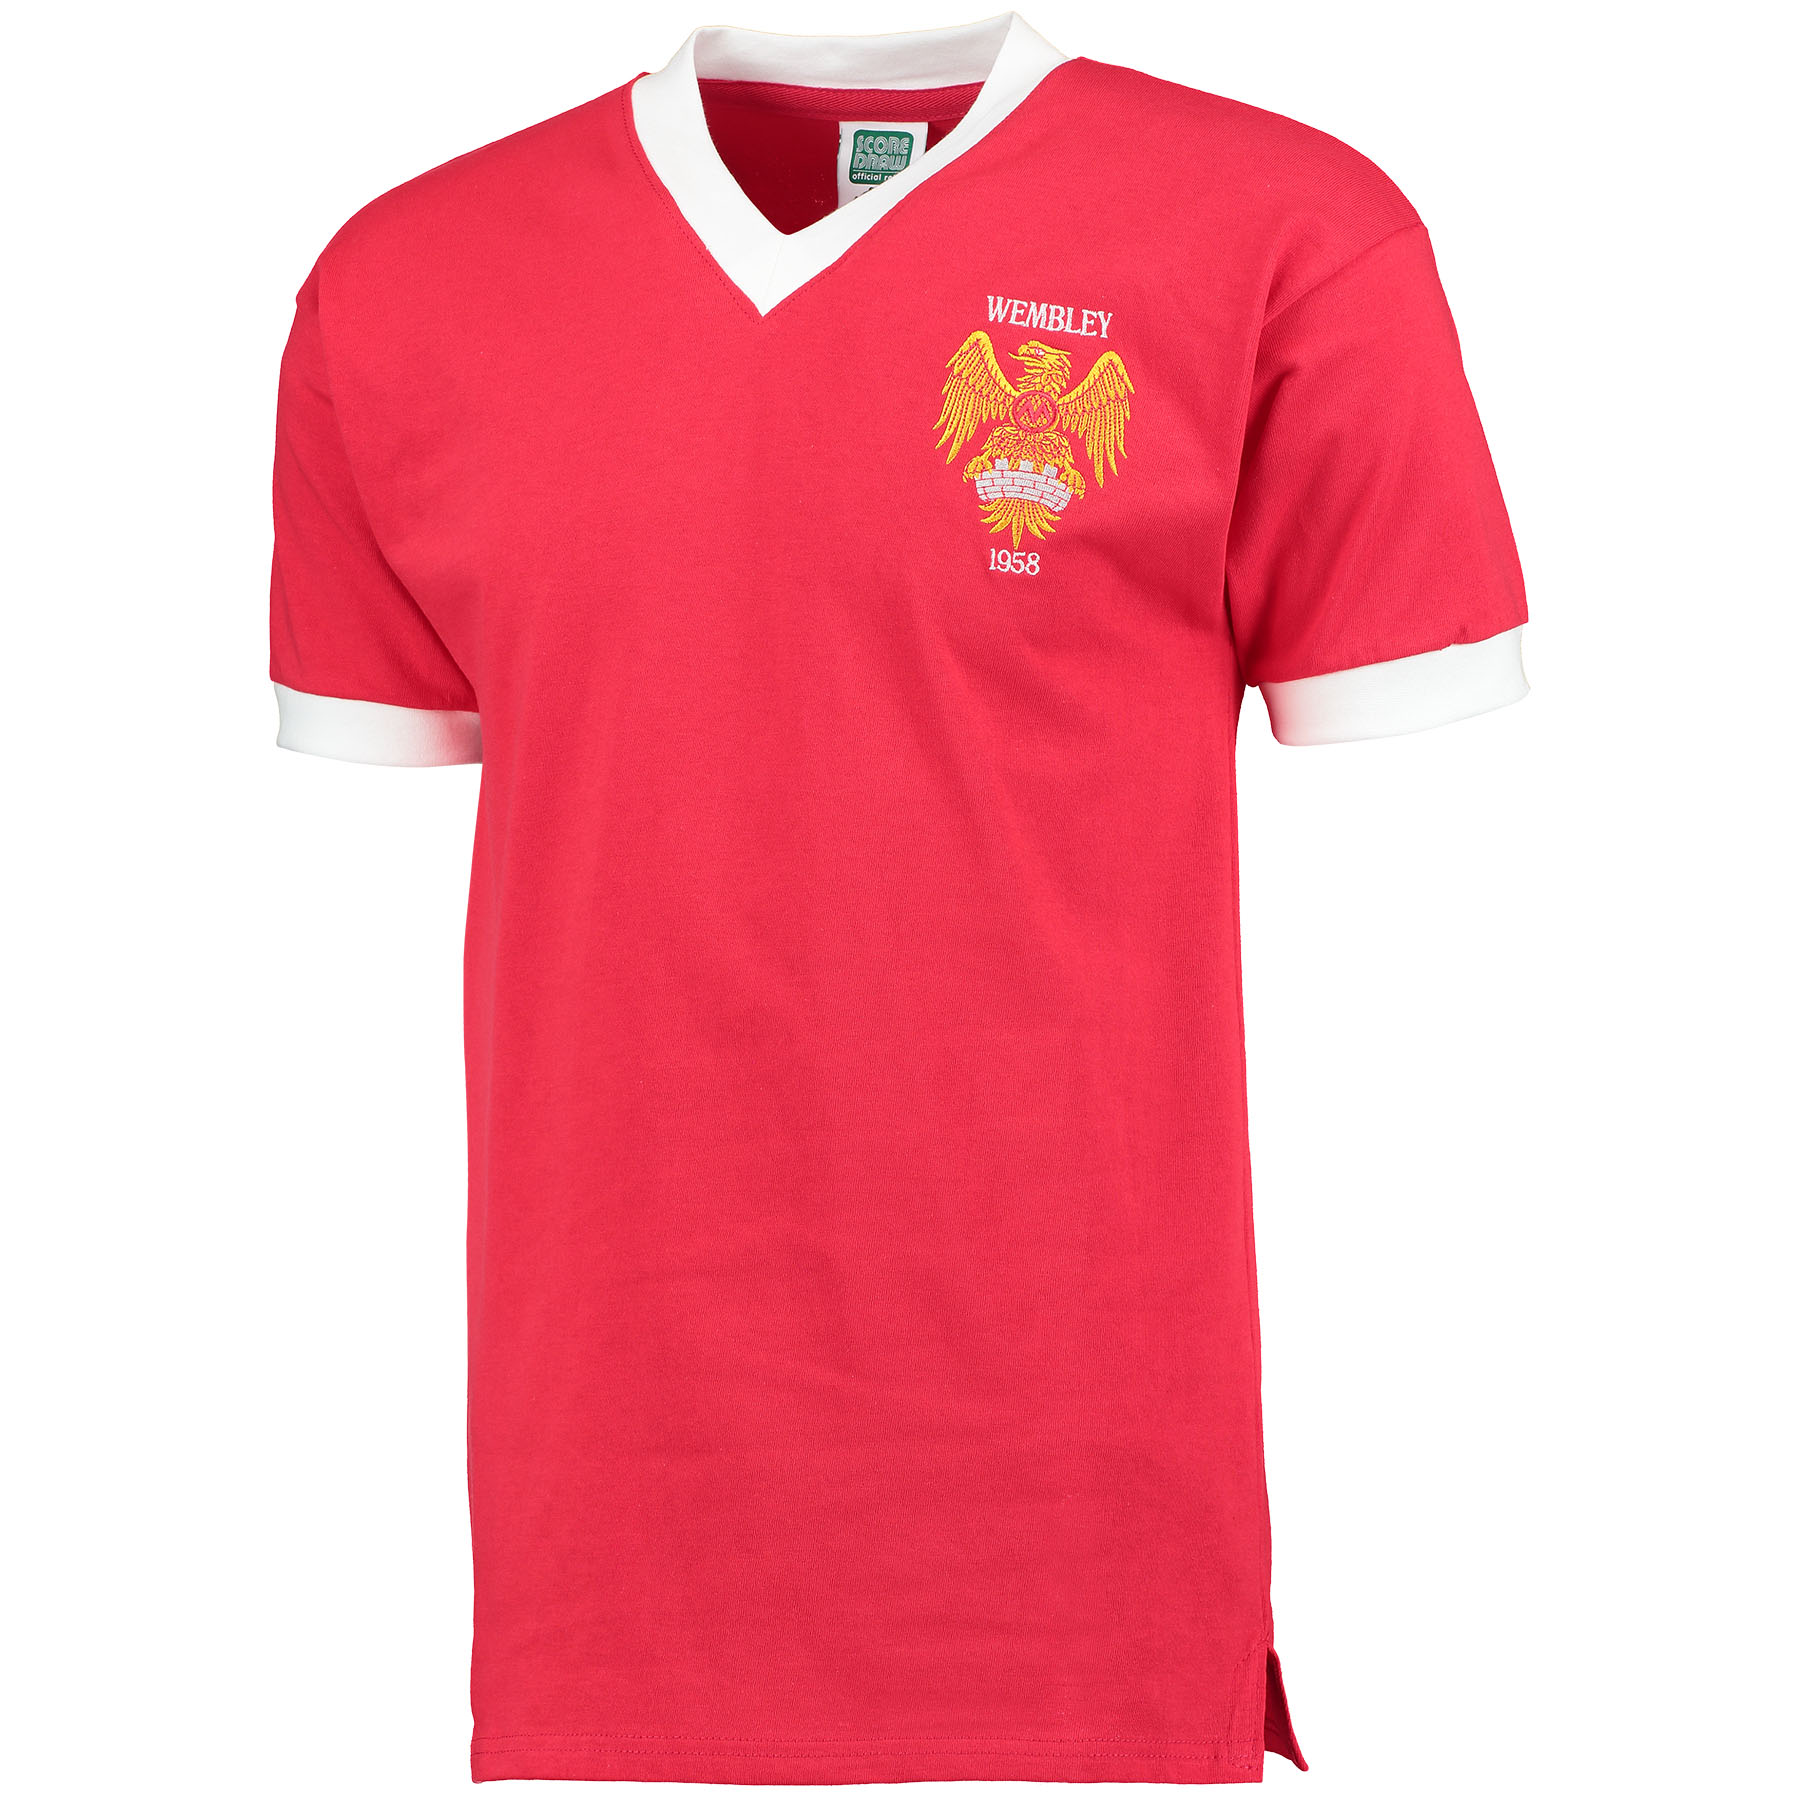 Manchester United 1958 FA Cup Final Shirt